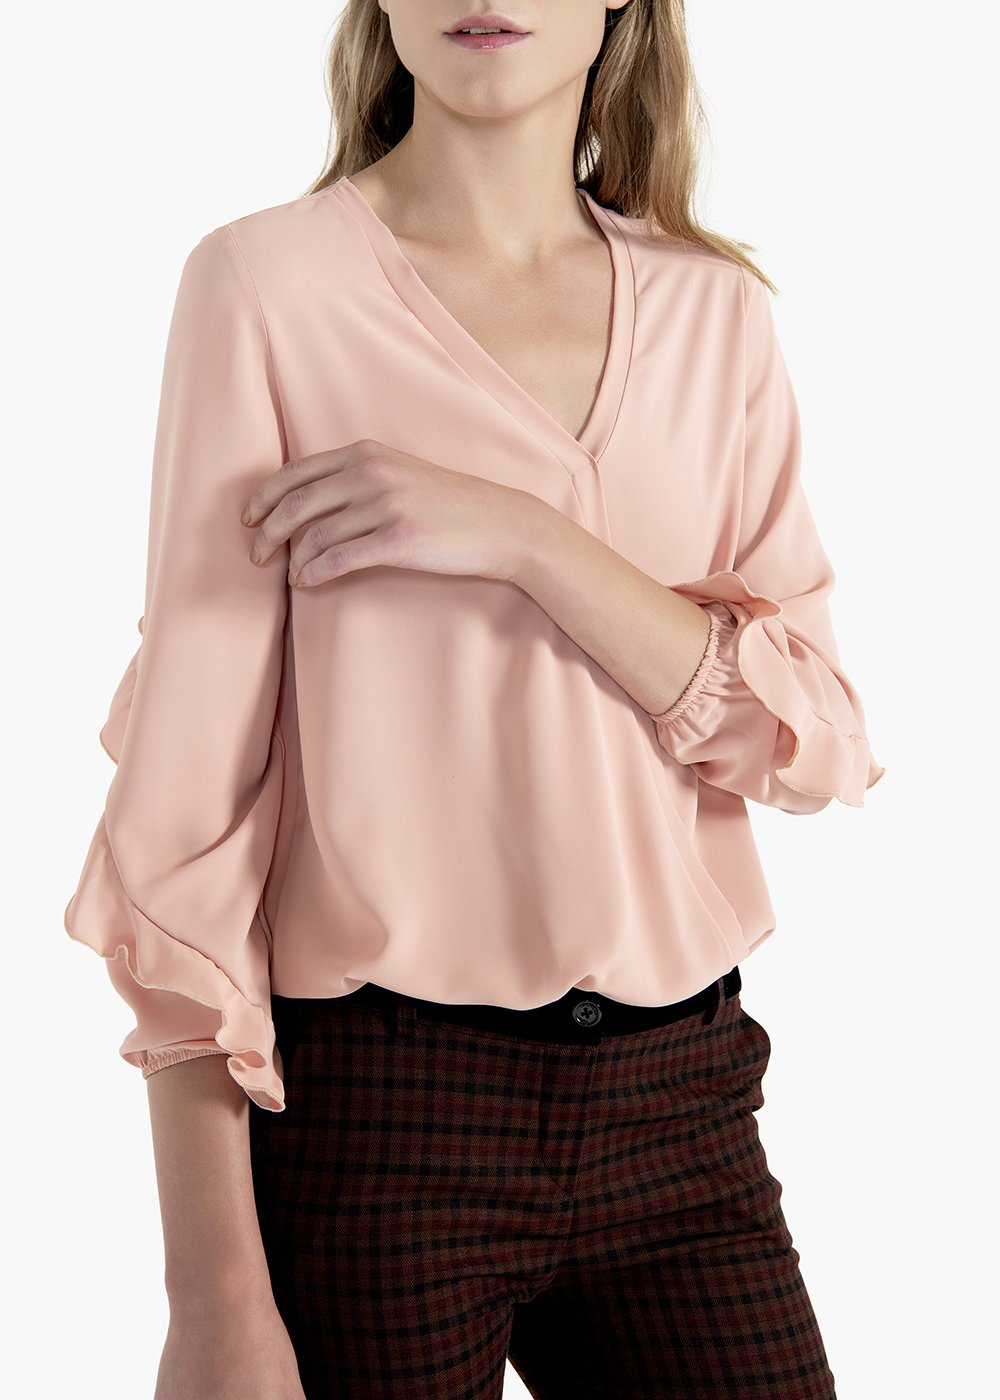 Elena crêpe shirt with ruffles on the sleeves - Rosette - Woman